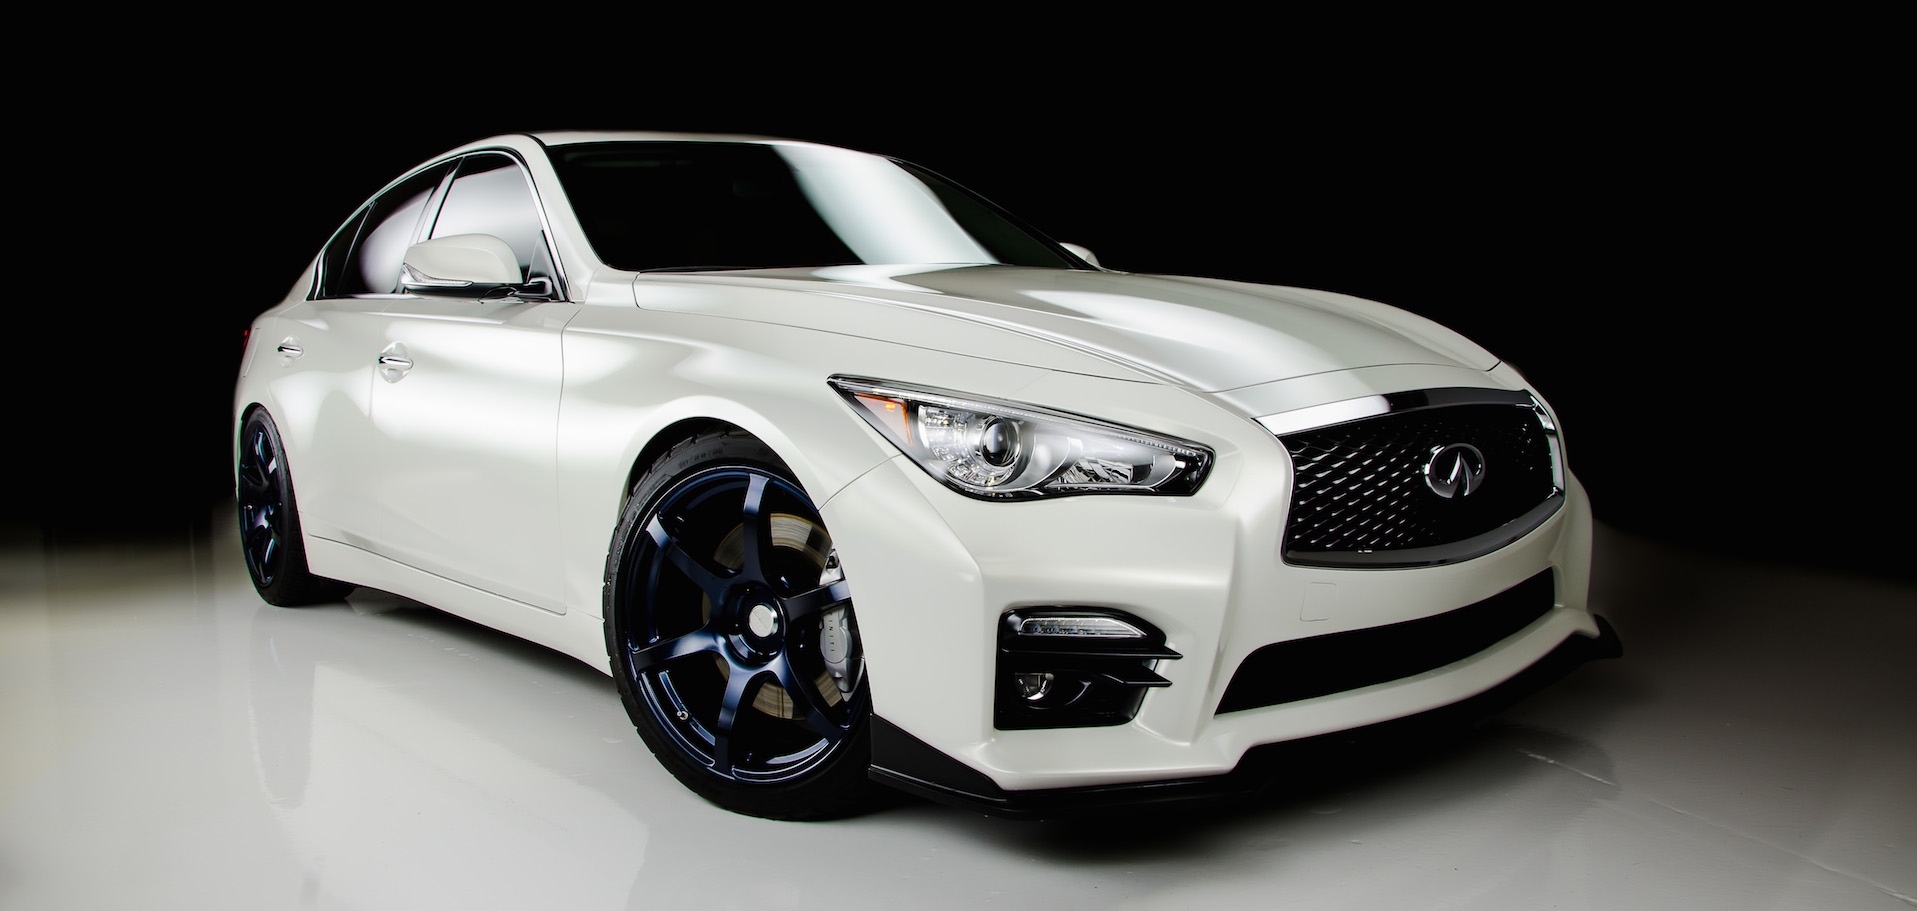 car bra paint protection film on white infiniti